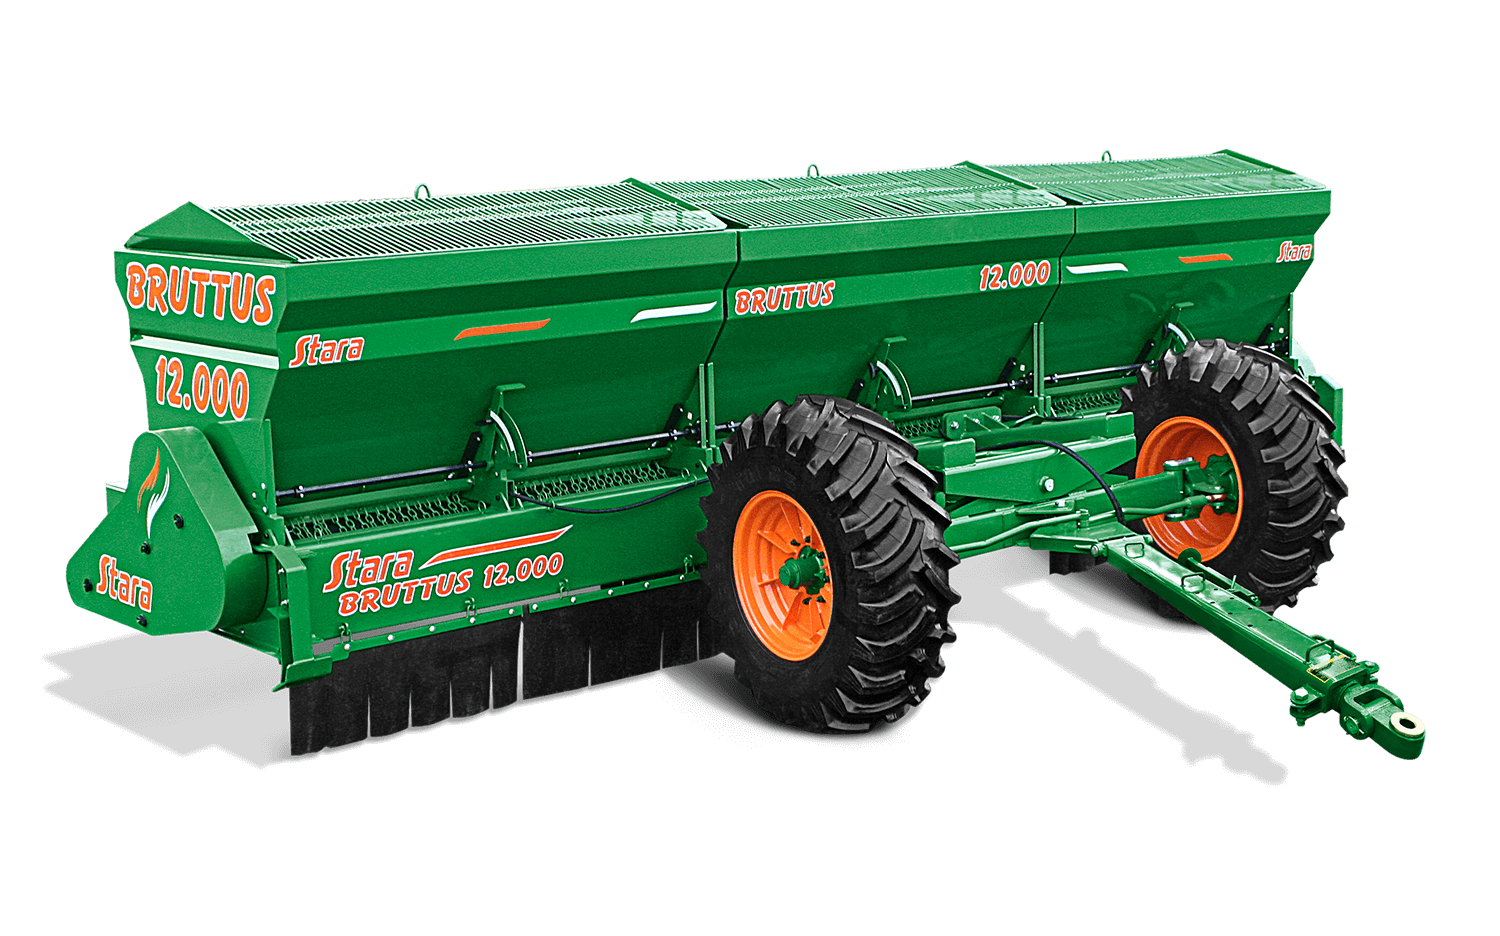 Bruttus 12000 Spreader